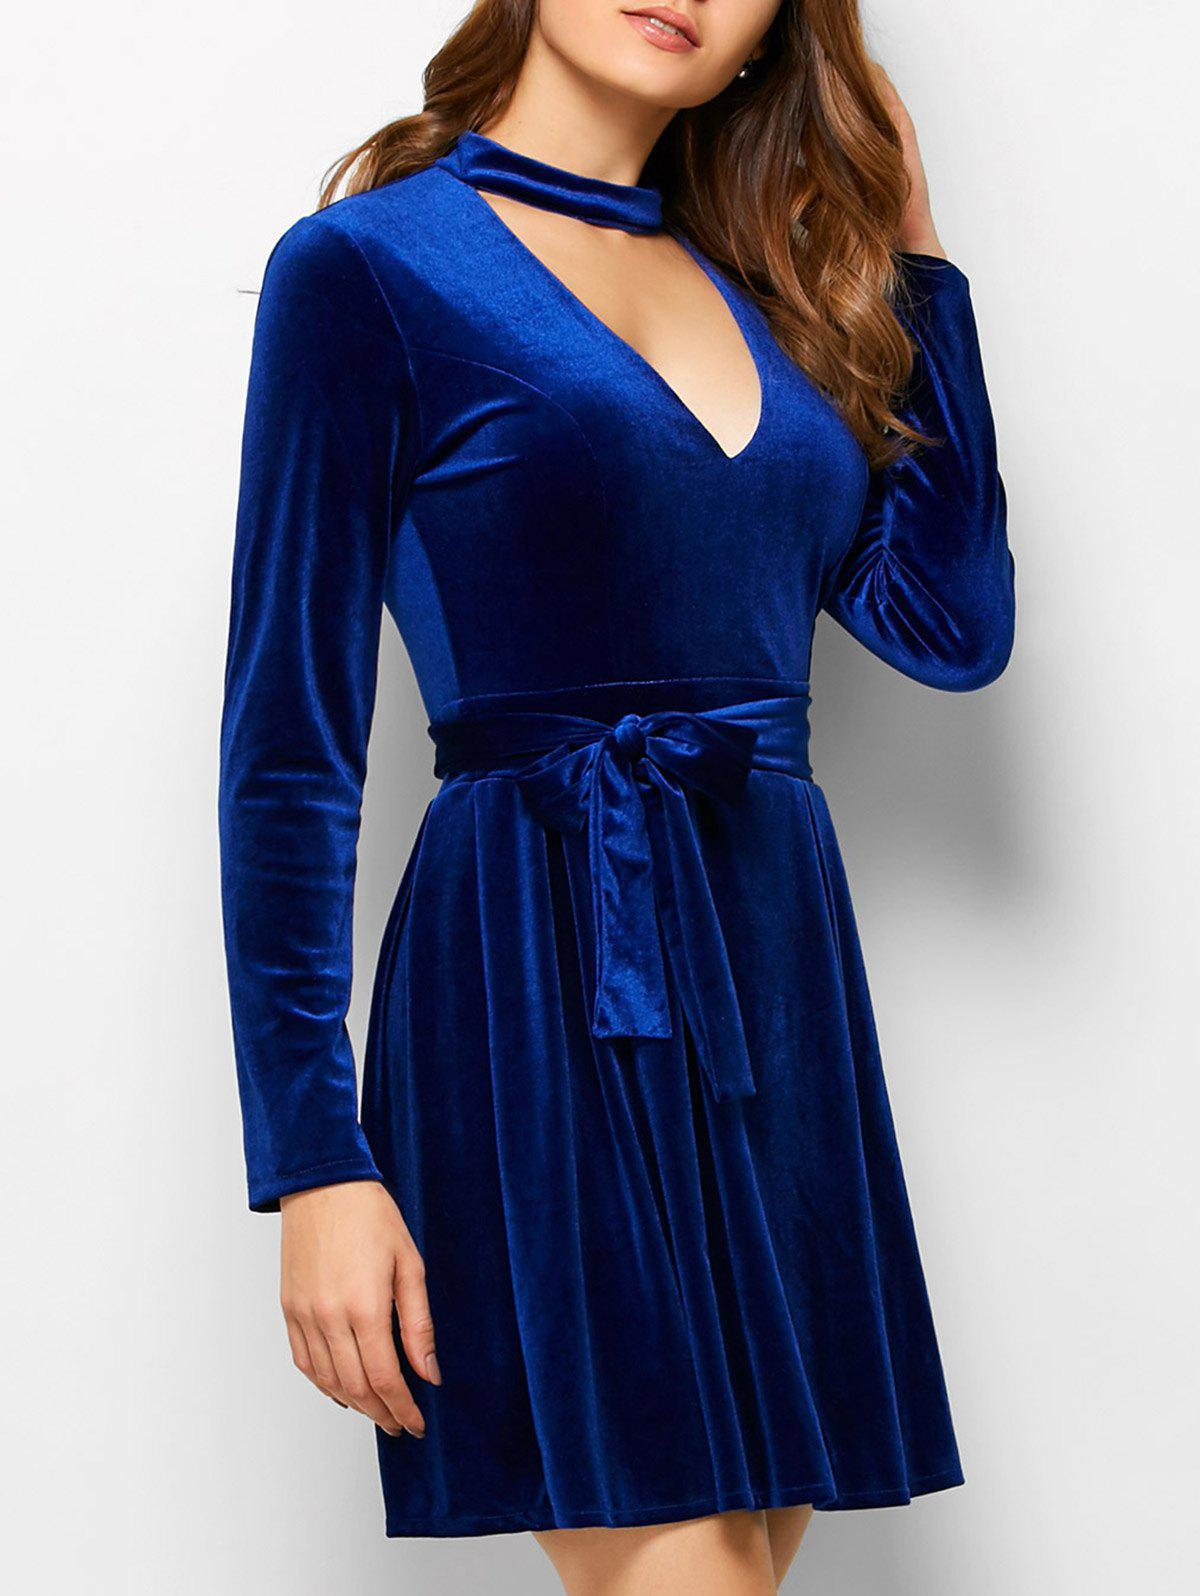 Choker Velvet Belted Mini Dress - BLUE M